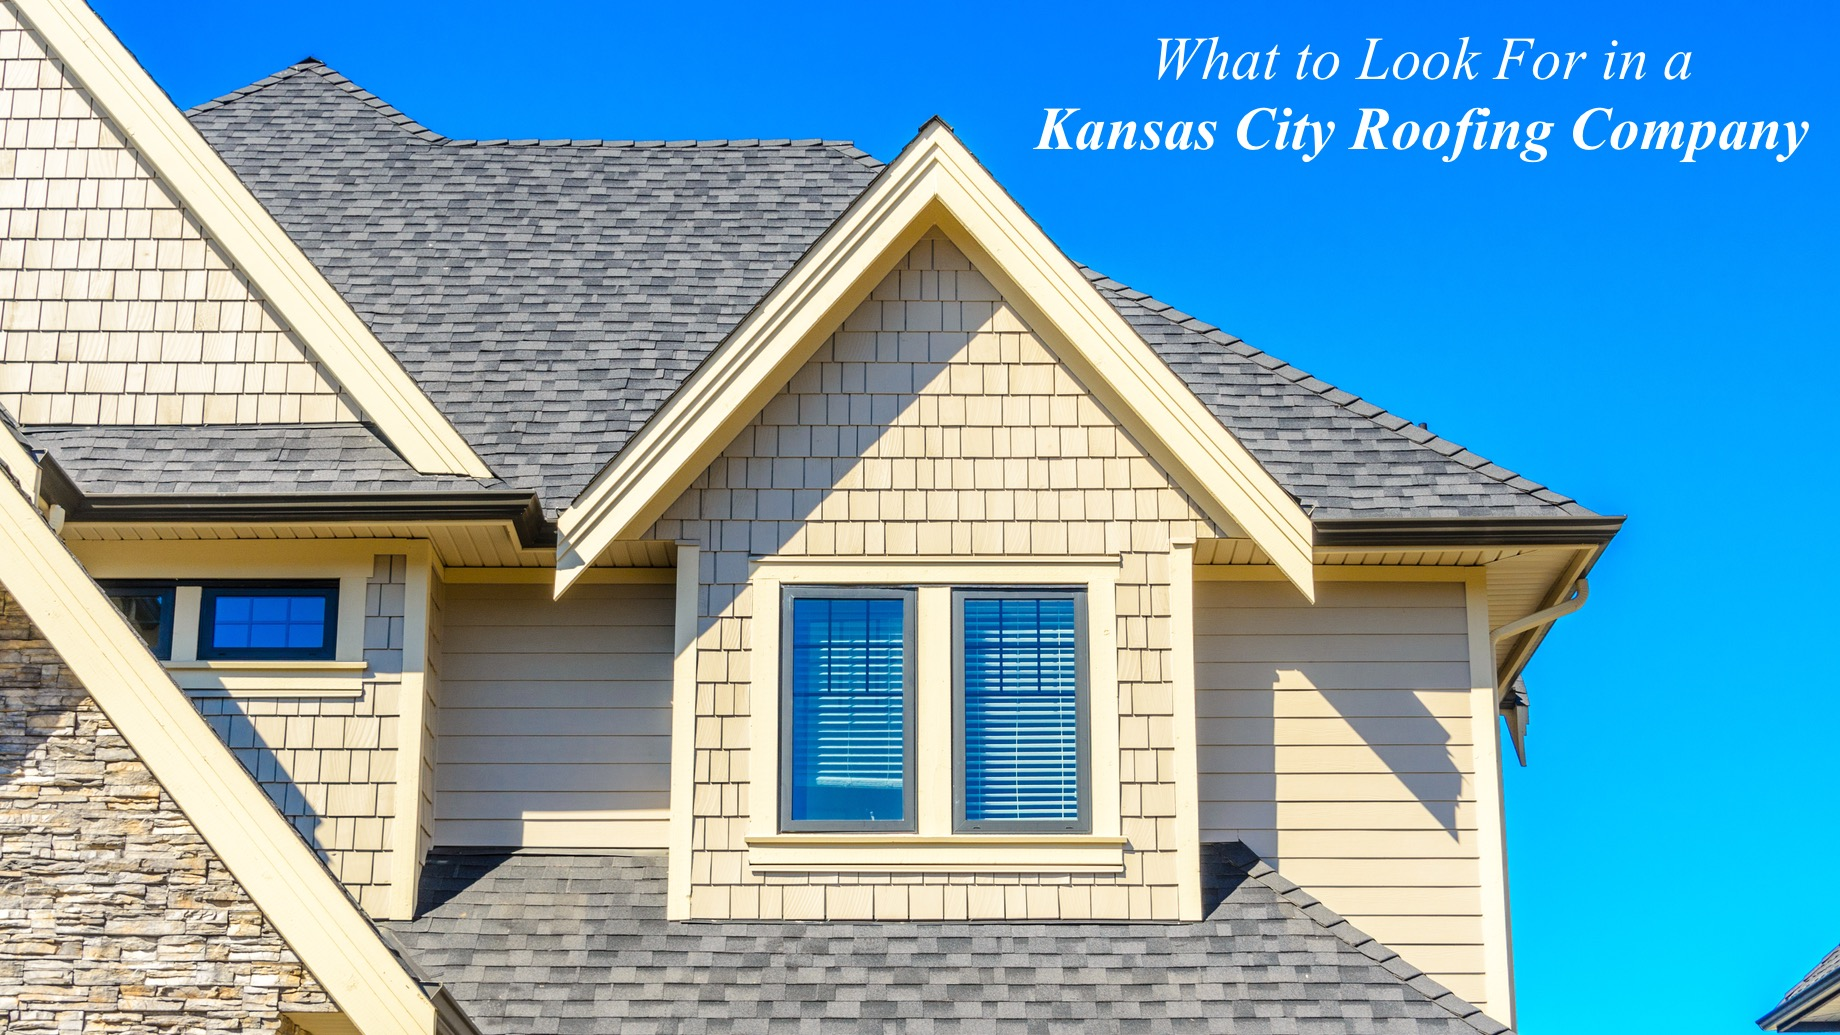 What to Look For in a Kansas City Roofing Company